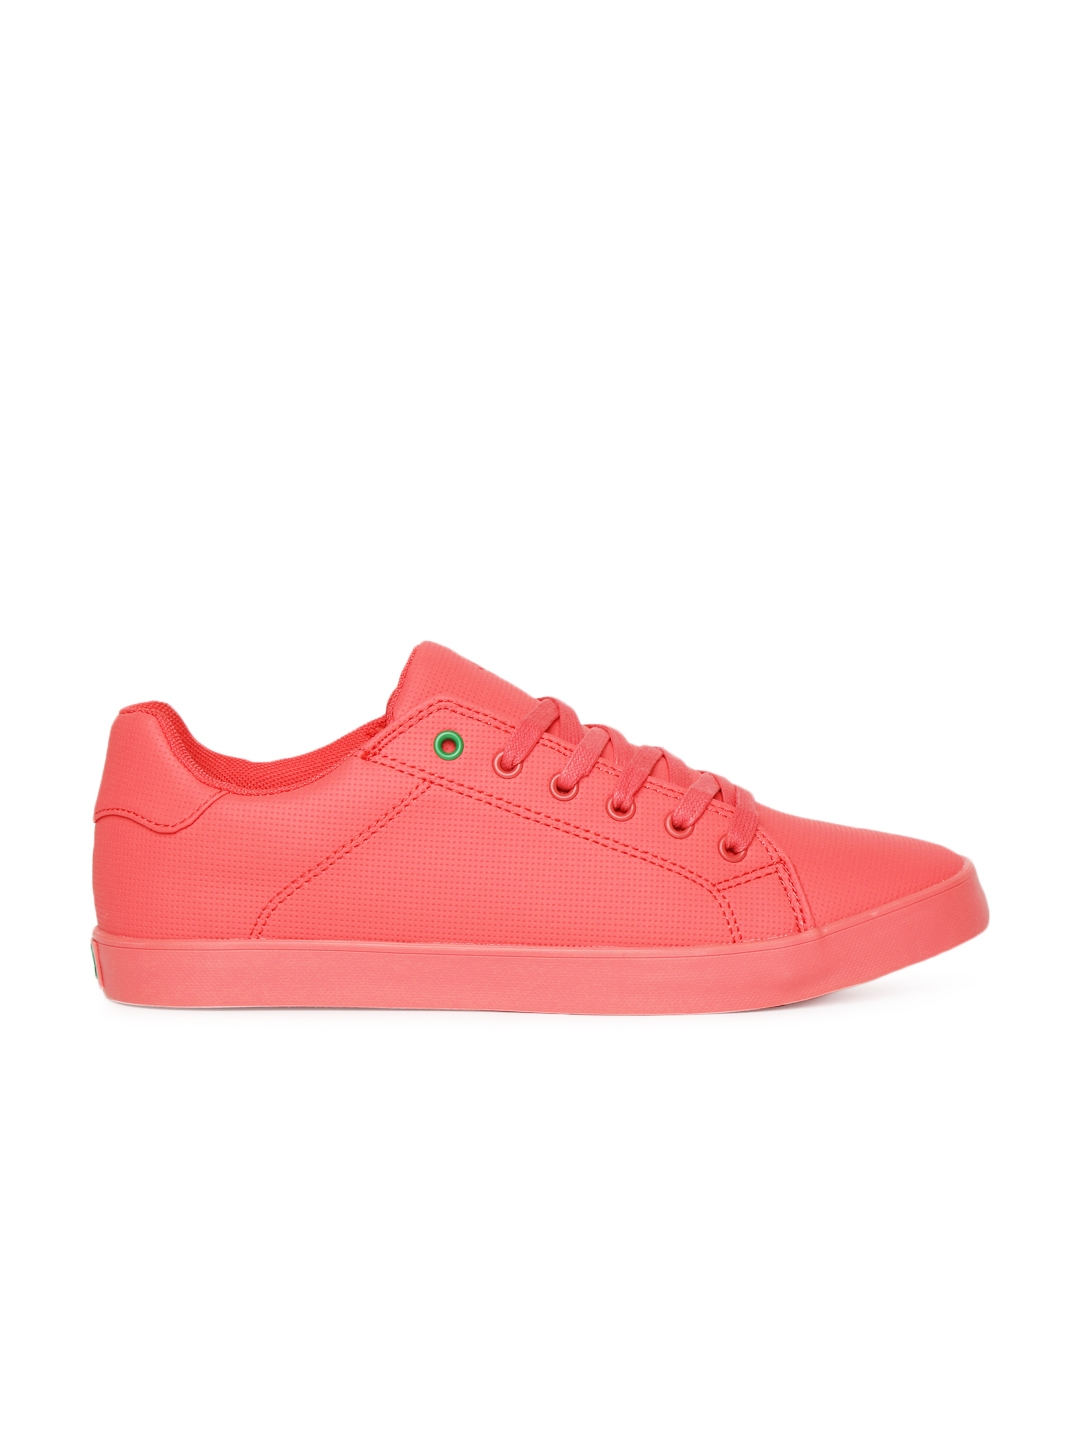 Red Sneakers - Casual Shoes for Men